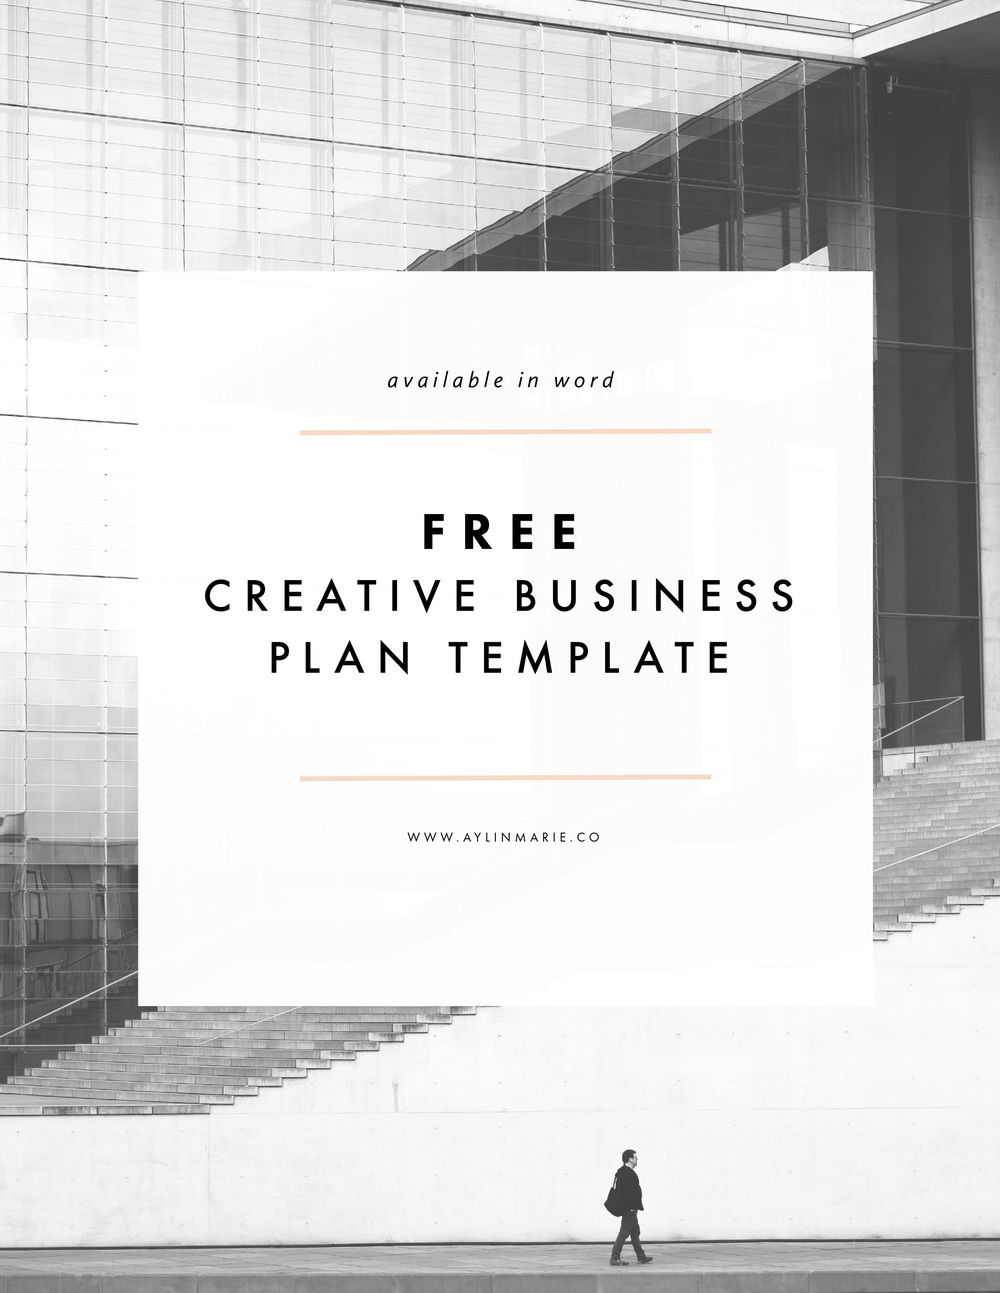 Freebie creative business plan template aylin marie freebie creative business plan template friedricerecipe Image collections